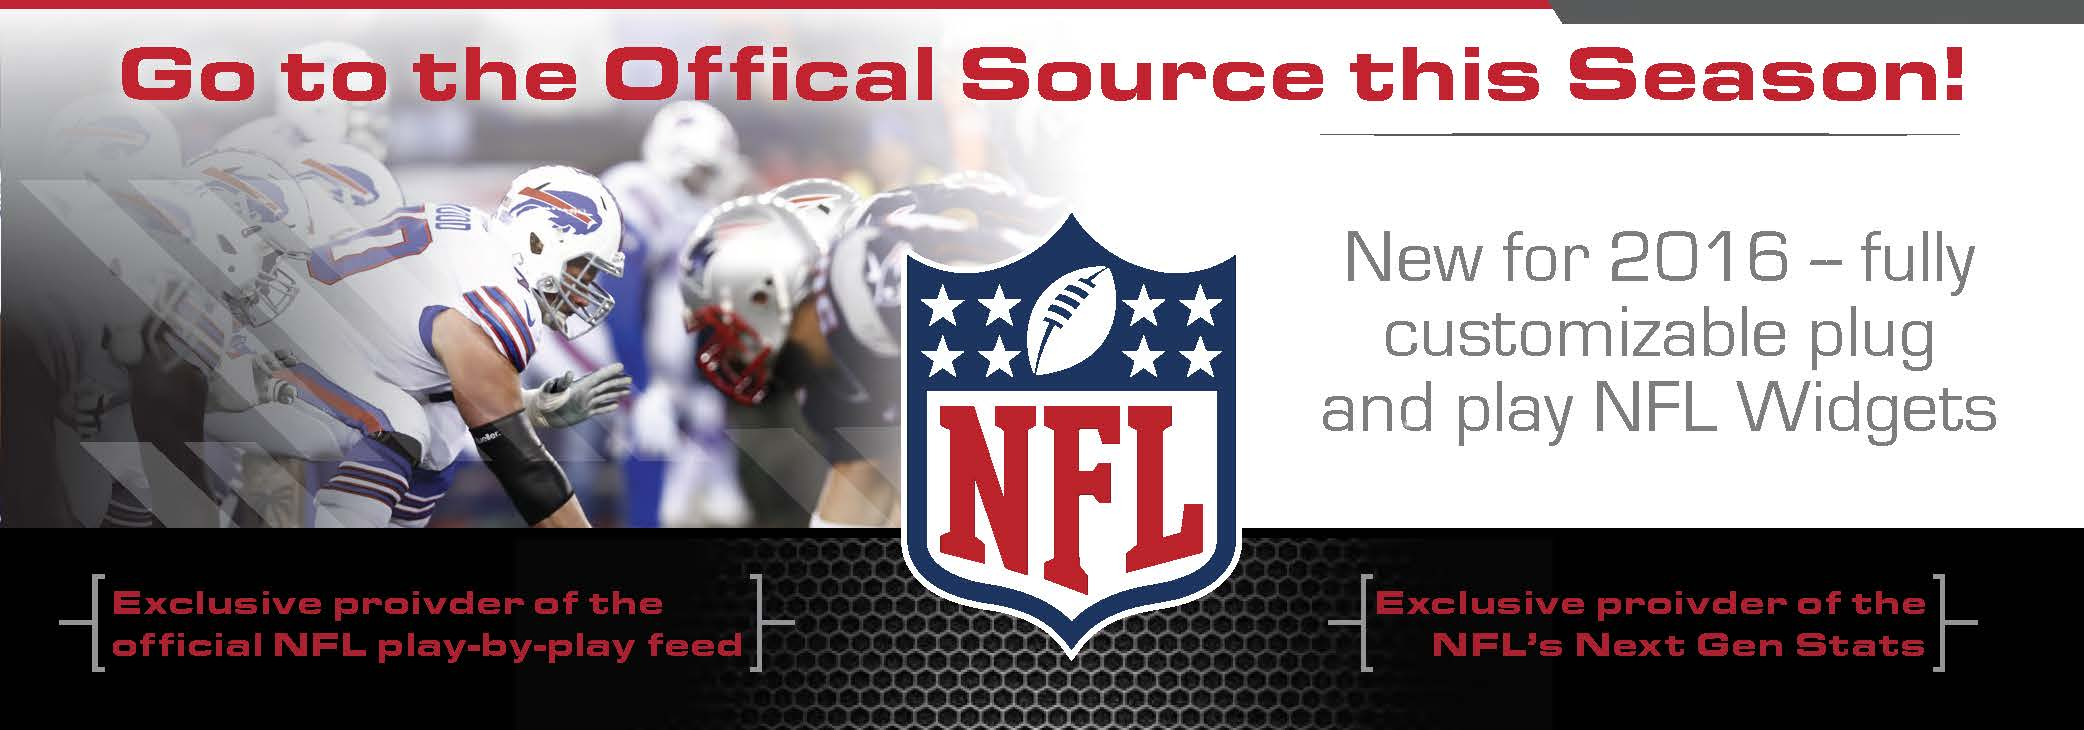 Sportradar Launches Cutting-Edge Intelligence Tool For The NFL